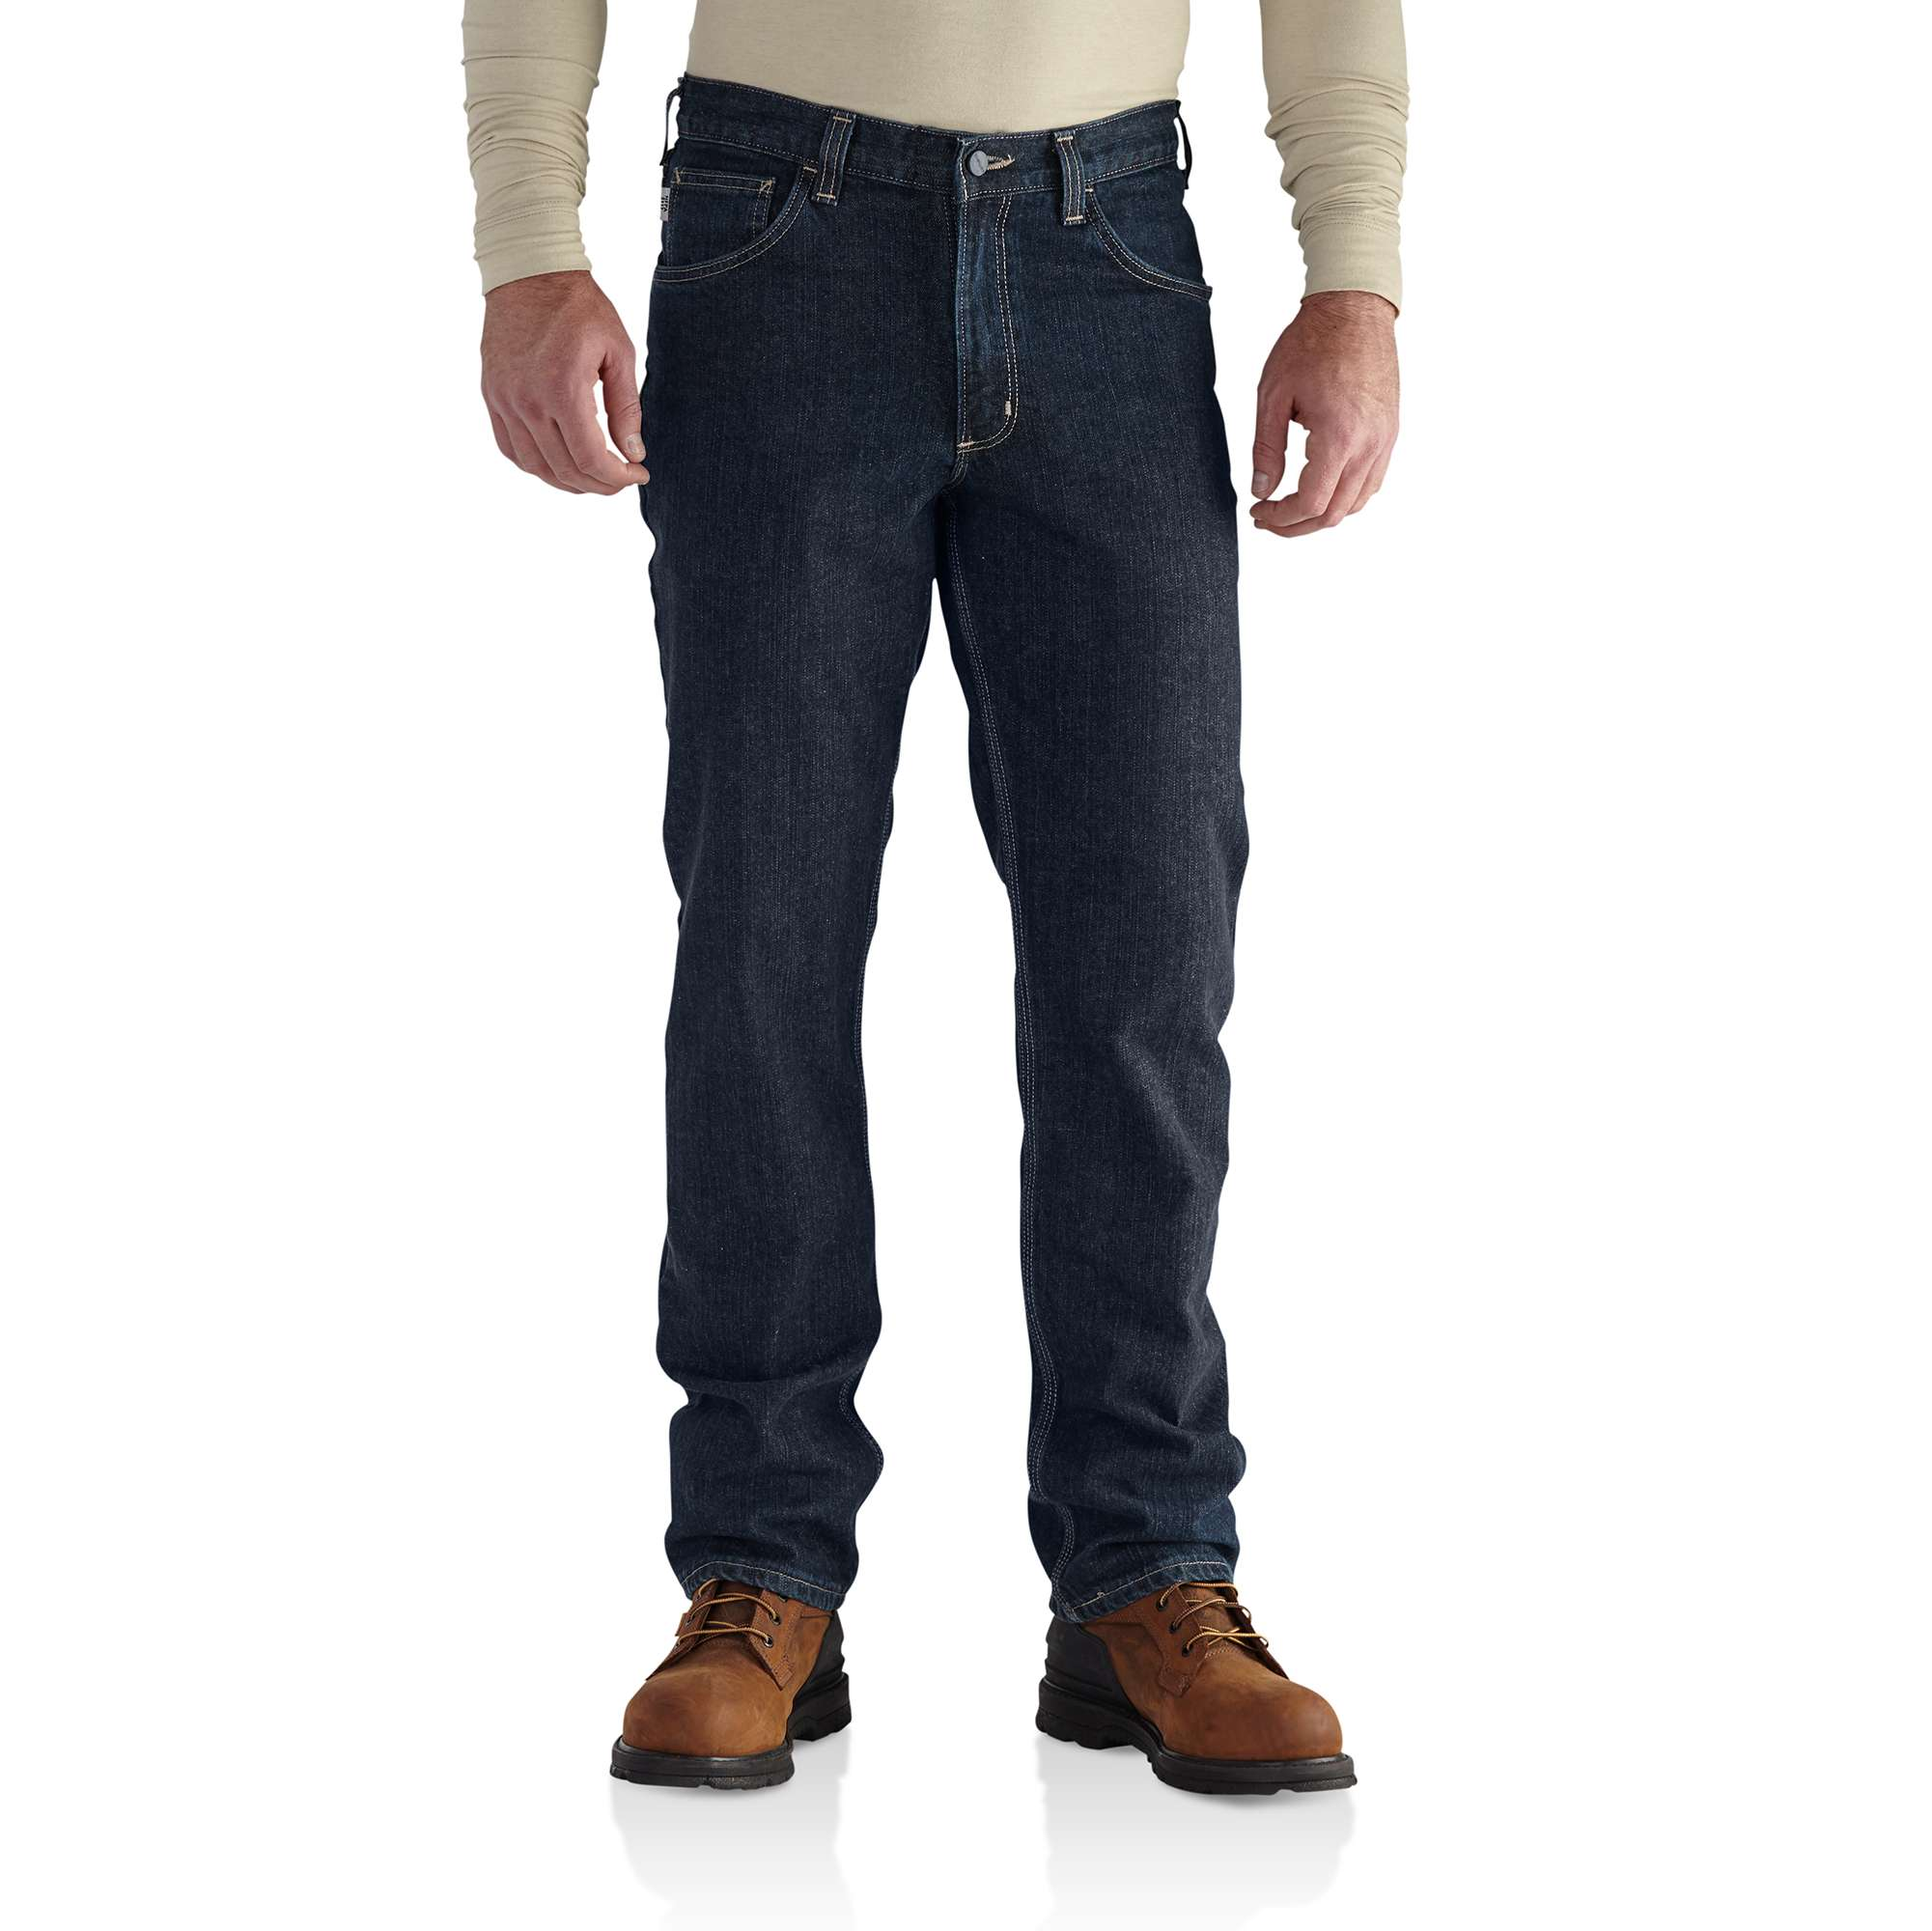 Carhartt Flame-Resistant Rugged Flex Jean - Straight Traditional Fit